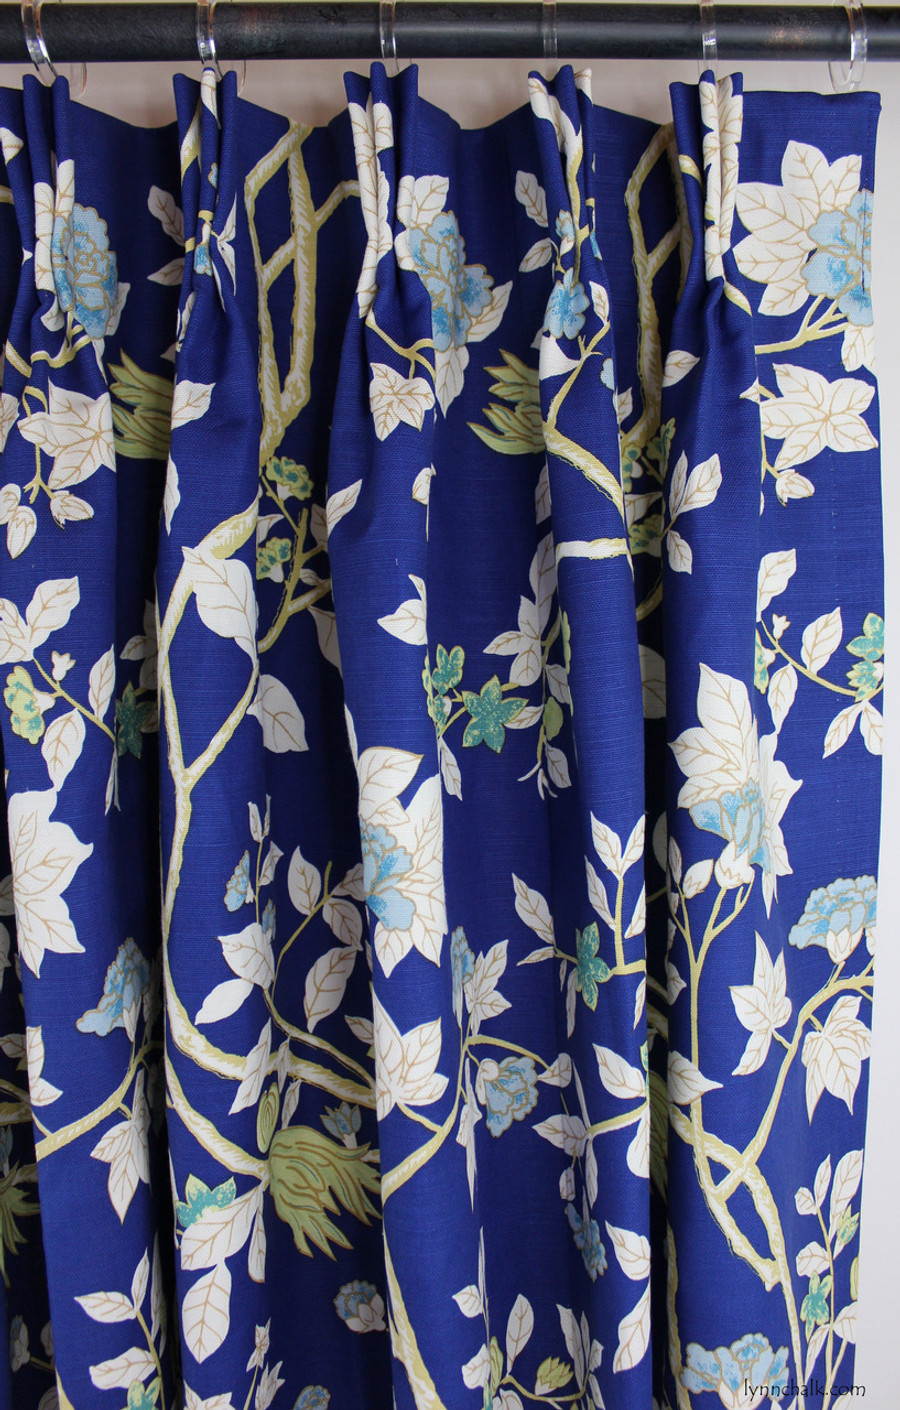 Custom Drapes by Lynn Chalk in Quadrille Happy Garden New Navy on Tint.